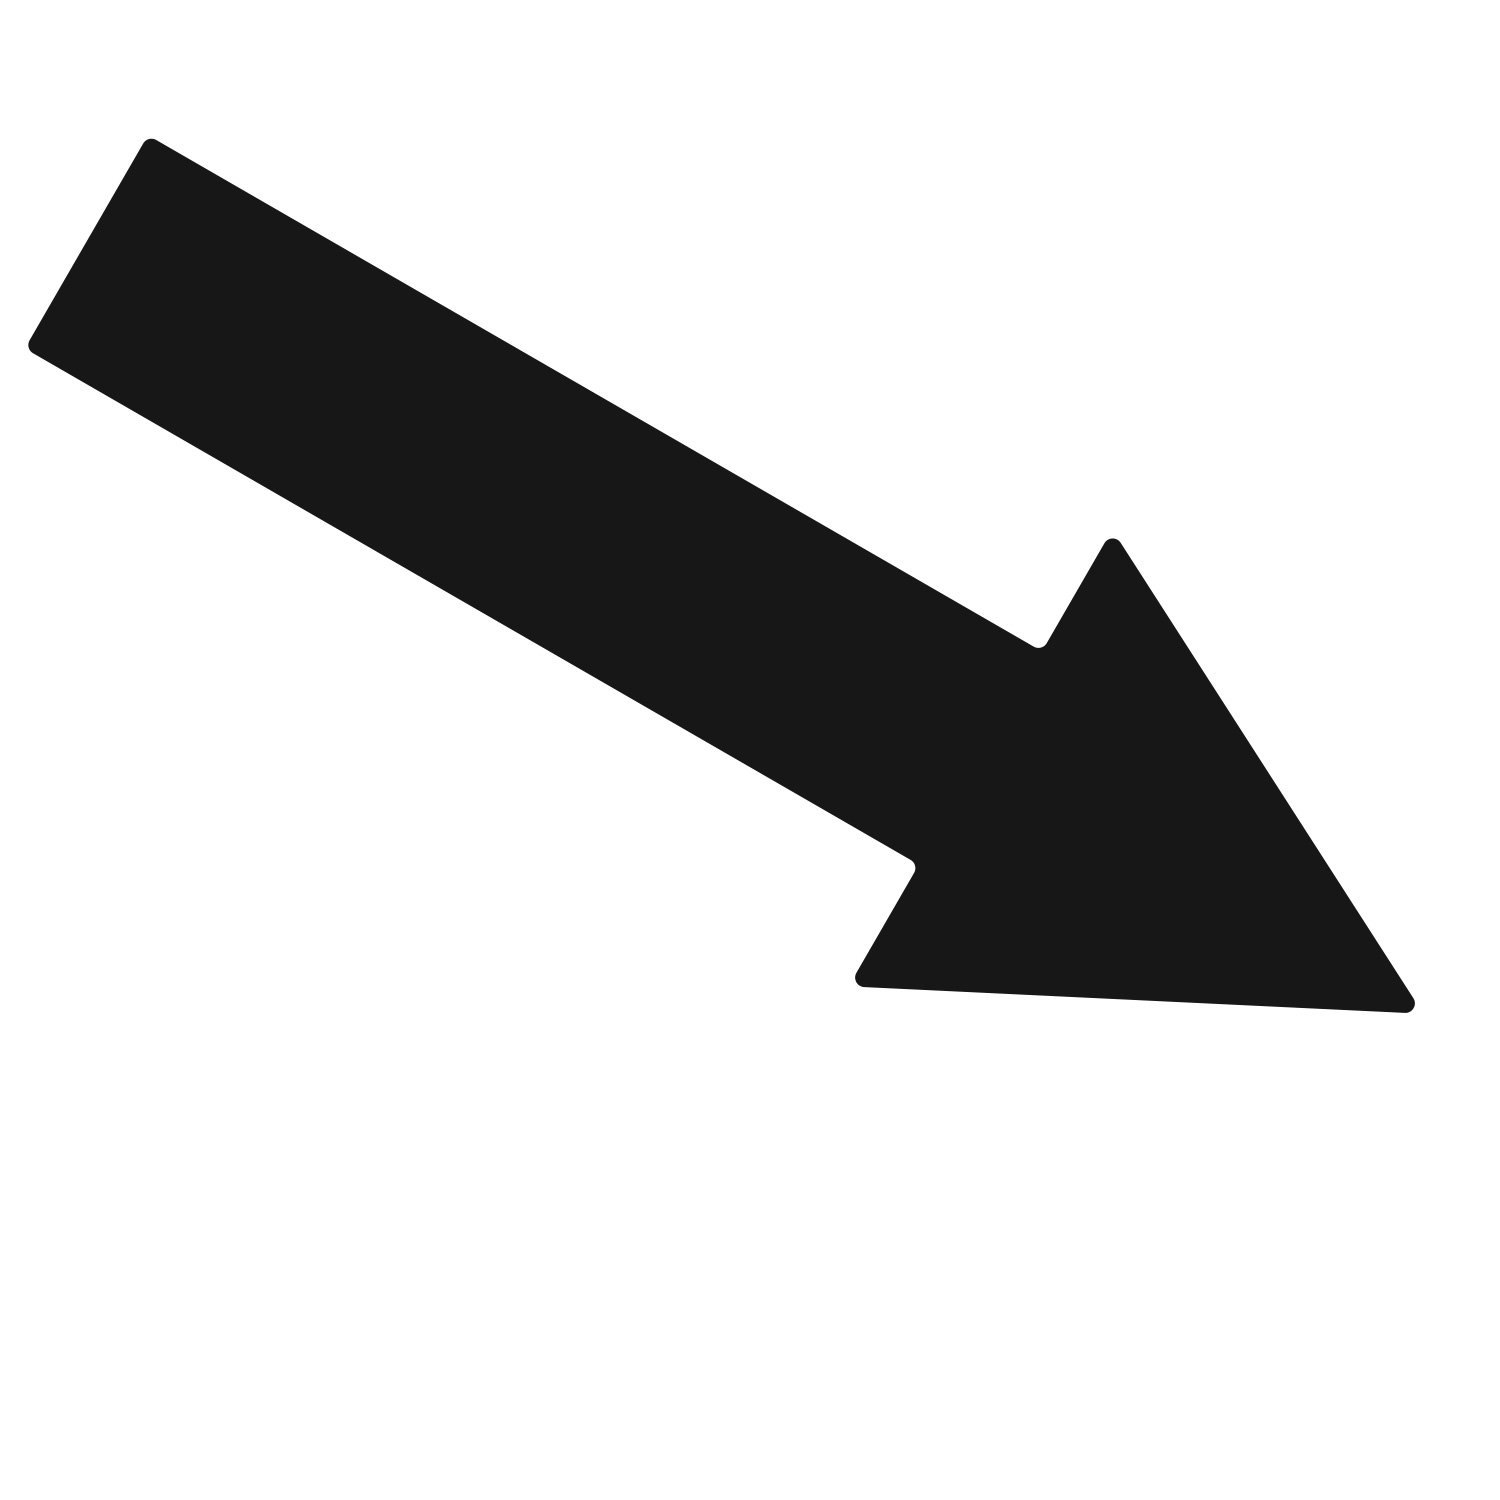 LiteMark 10 Inch Black Adhesive Narrow Arrow Decal Stickers for Floors, Walls, and Steps - Pack of 12